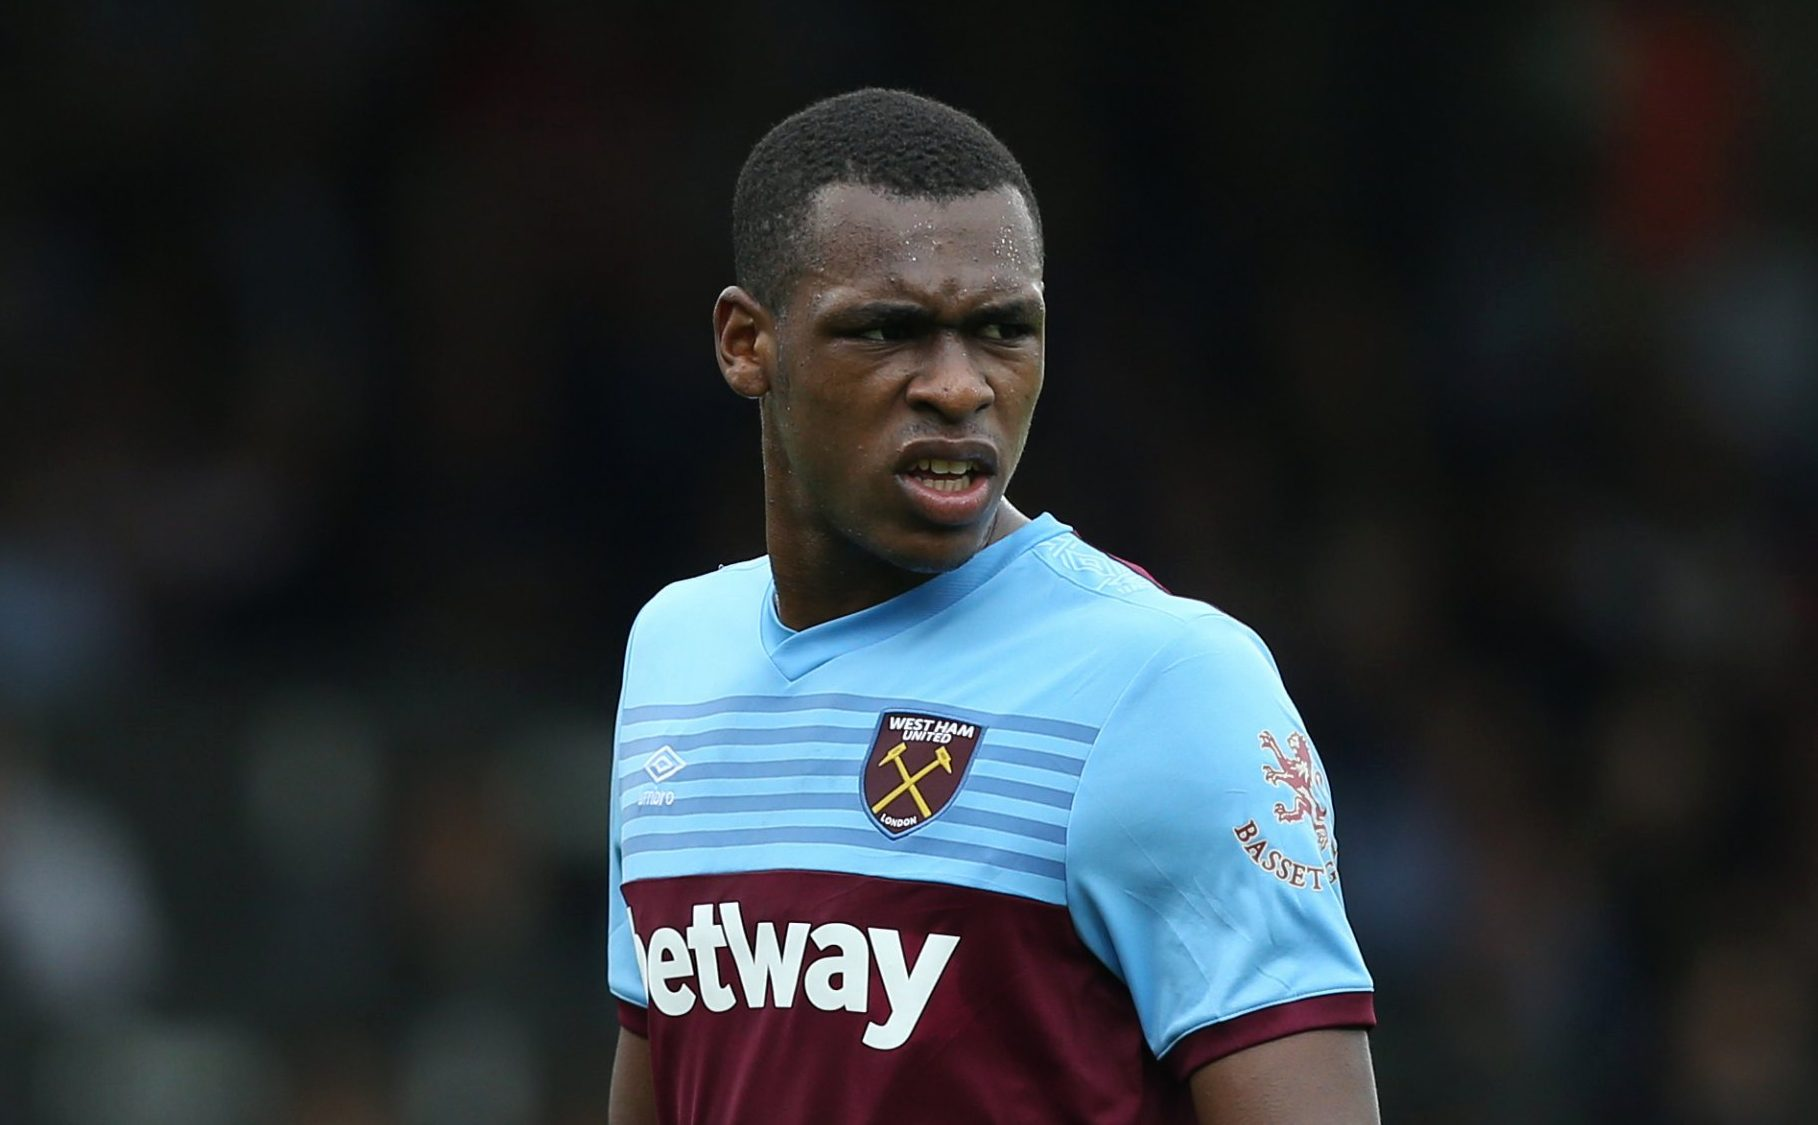 West Ham defender Issa Diop was wanted by Manchester United in a summer